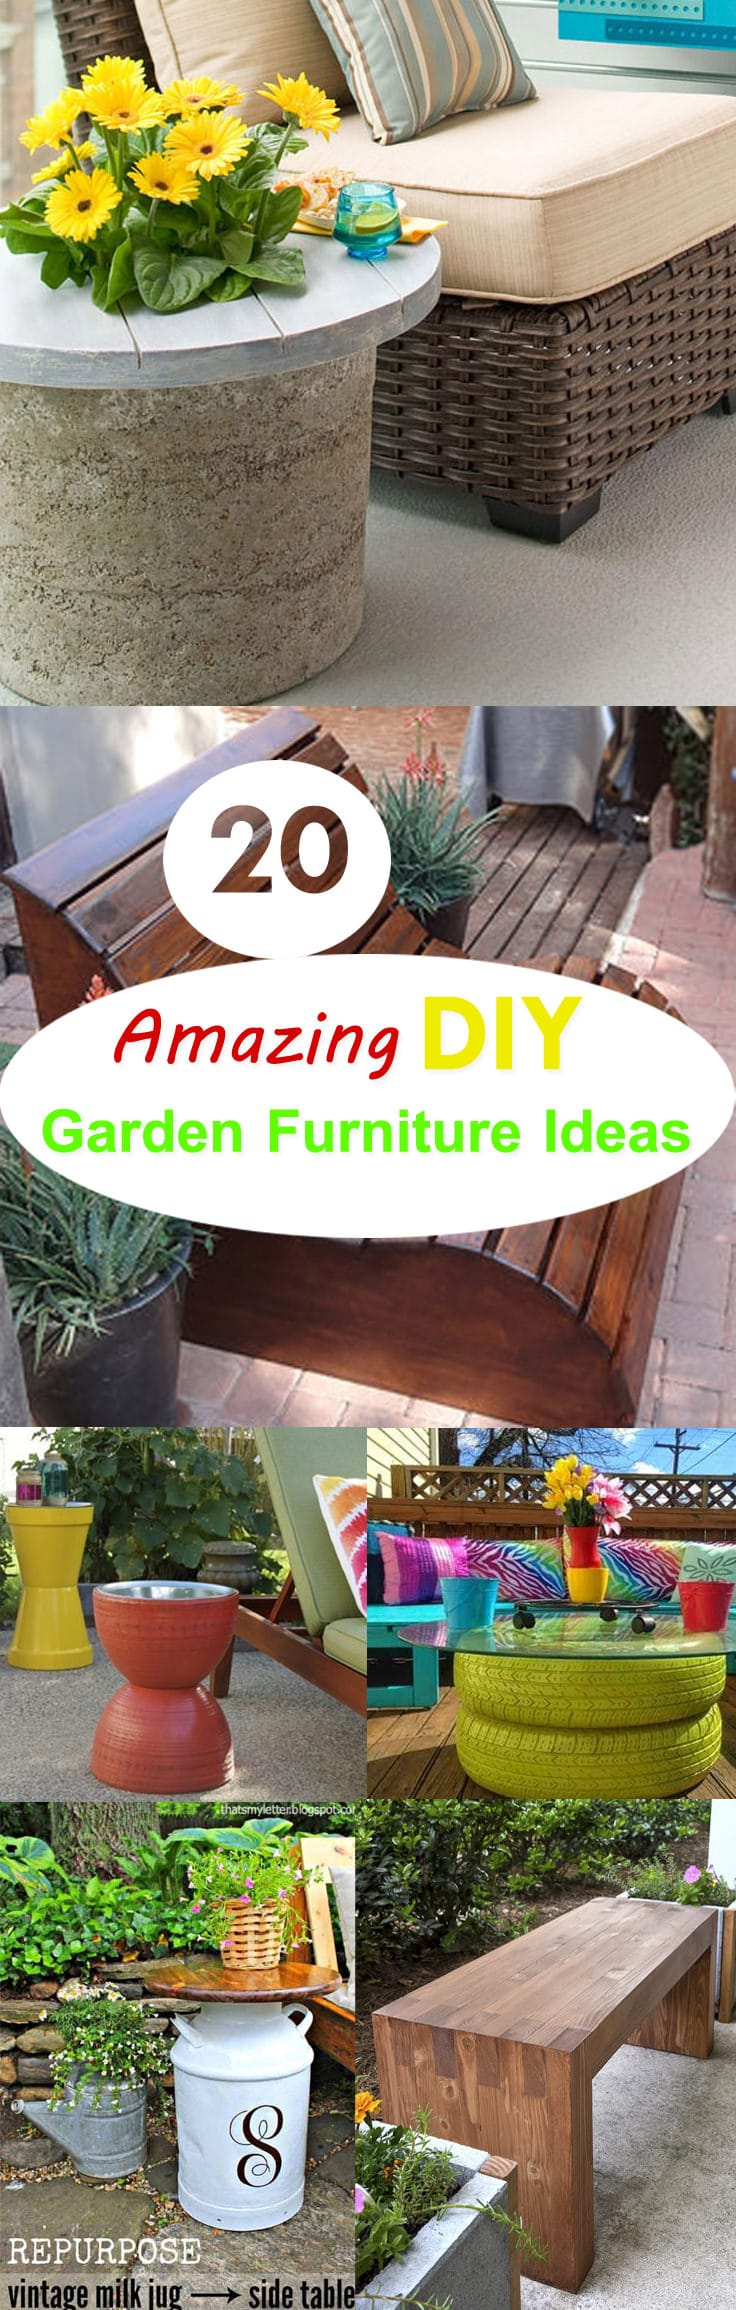 20 amazing diy garden furniture ideas diy patio for Cool outdoor furniture ideas